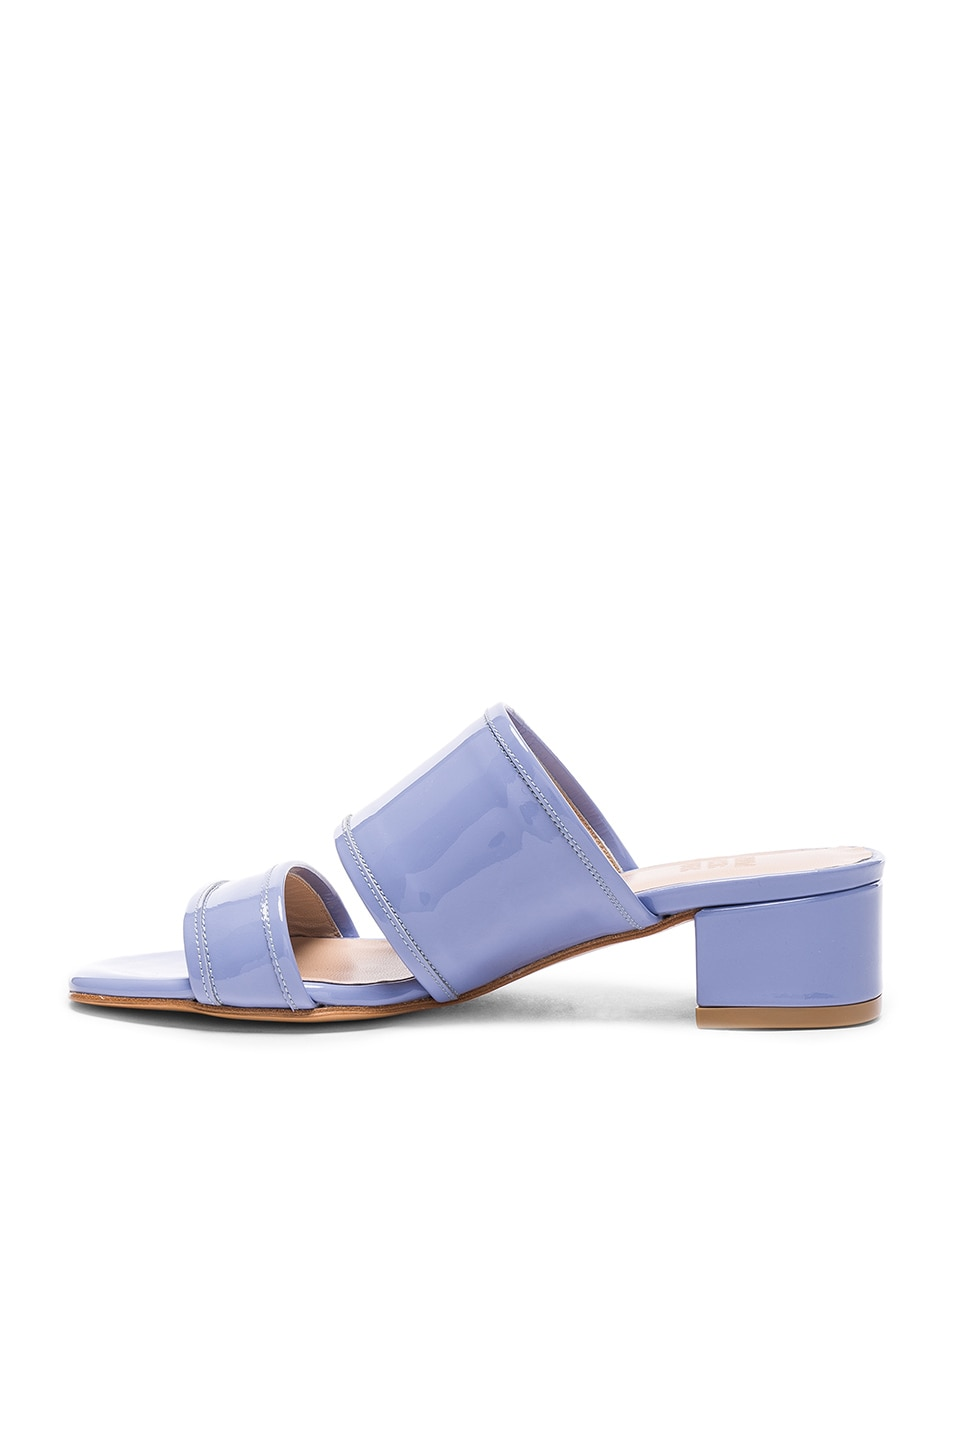 Image 5 of Maryam Nassir Zadeh Patent Leather Martina Slide Sandals in Periwinkle Patent